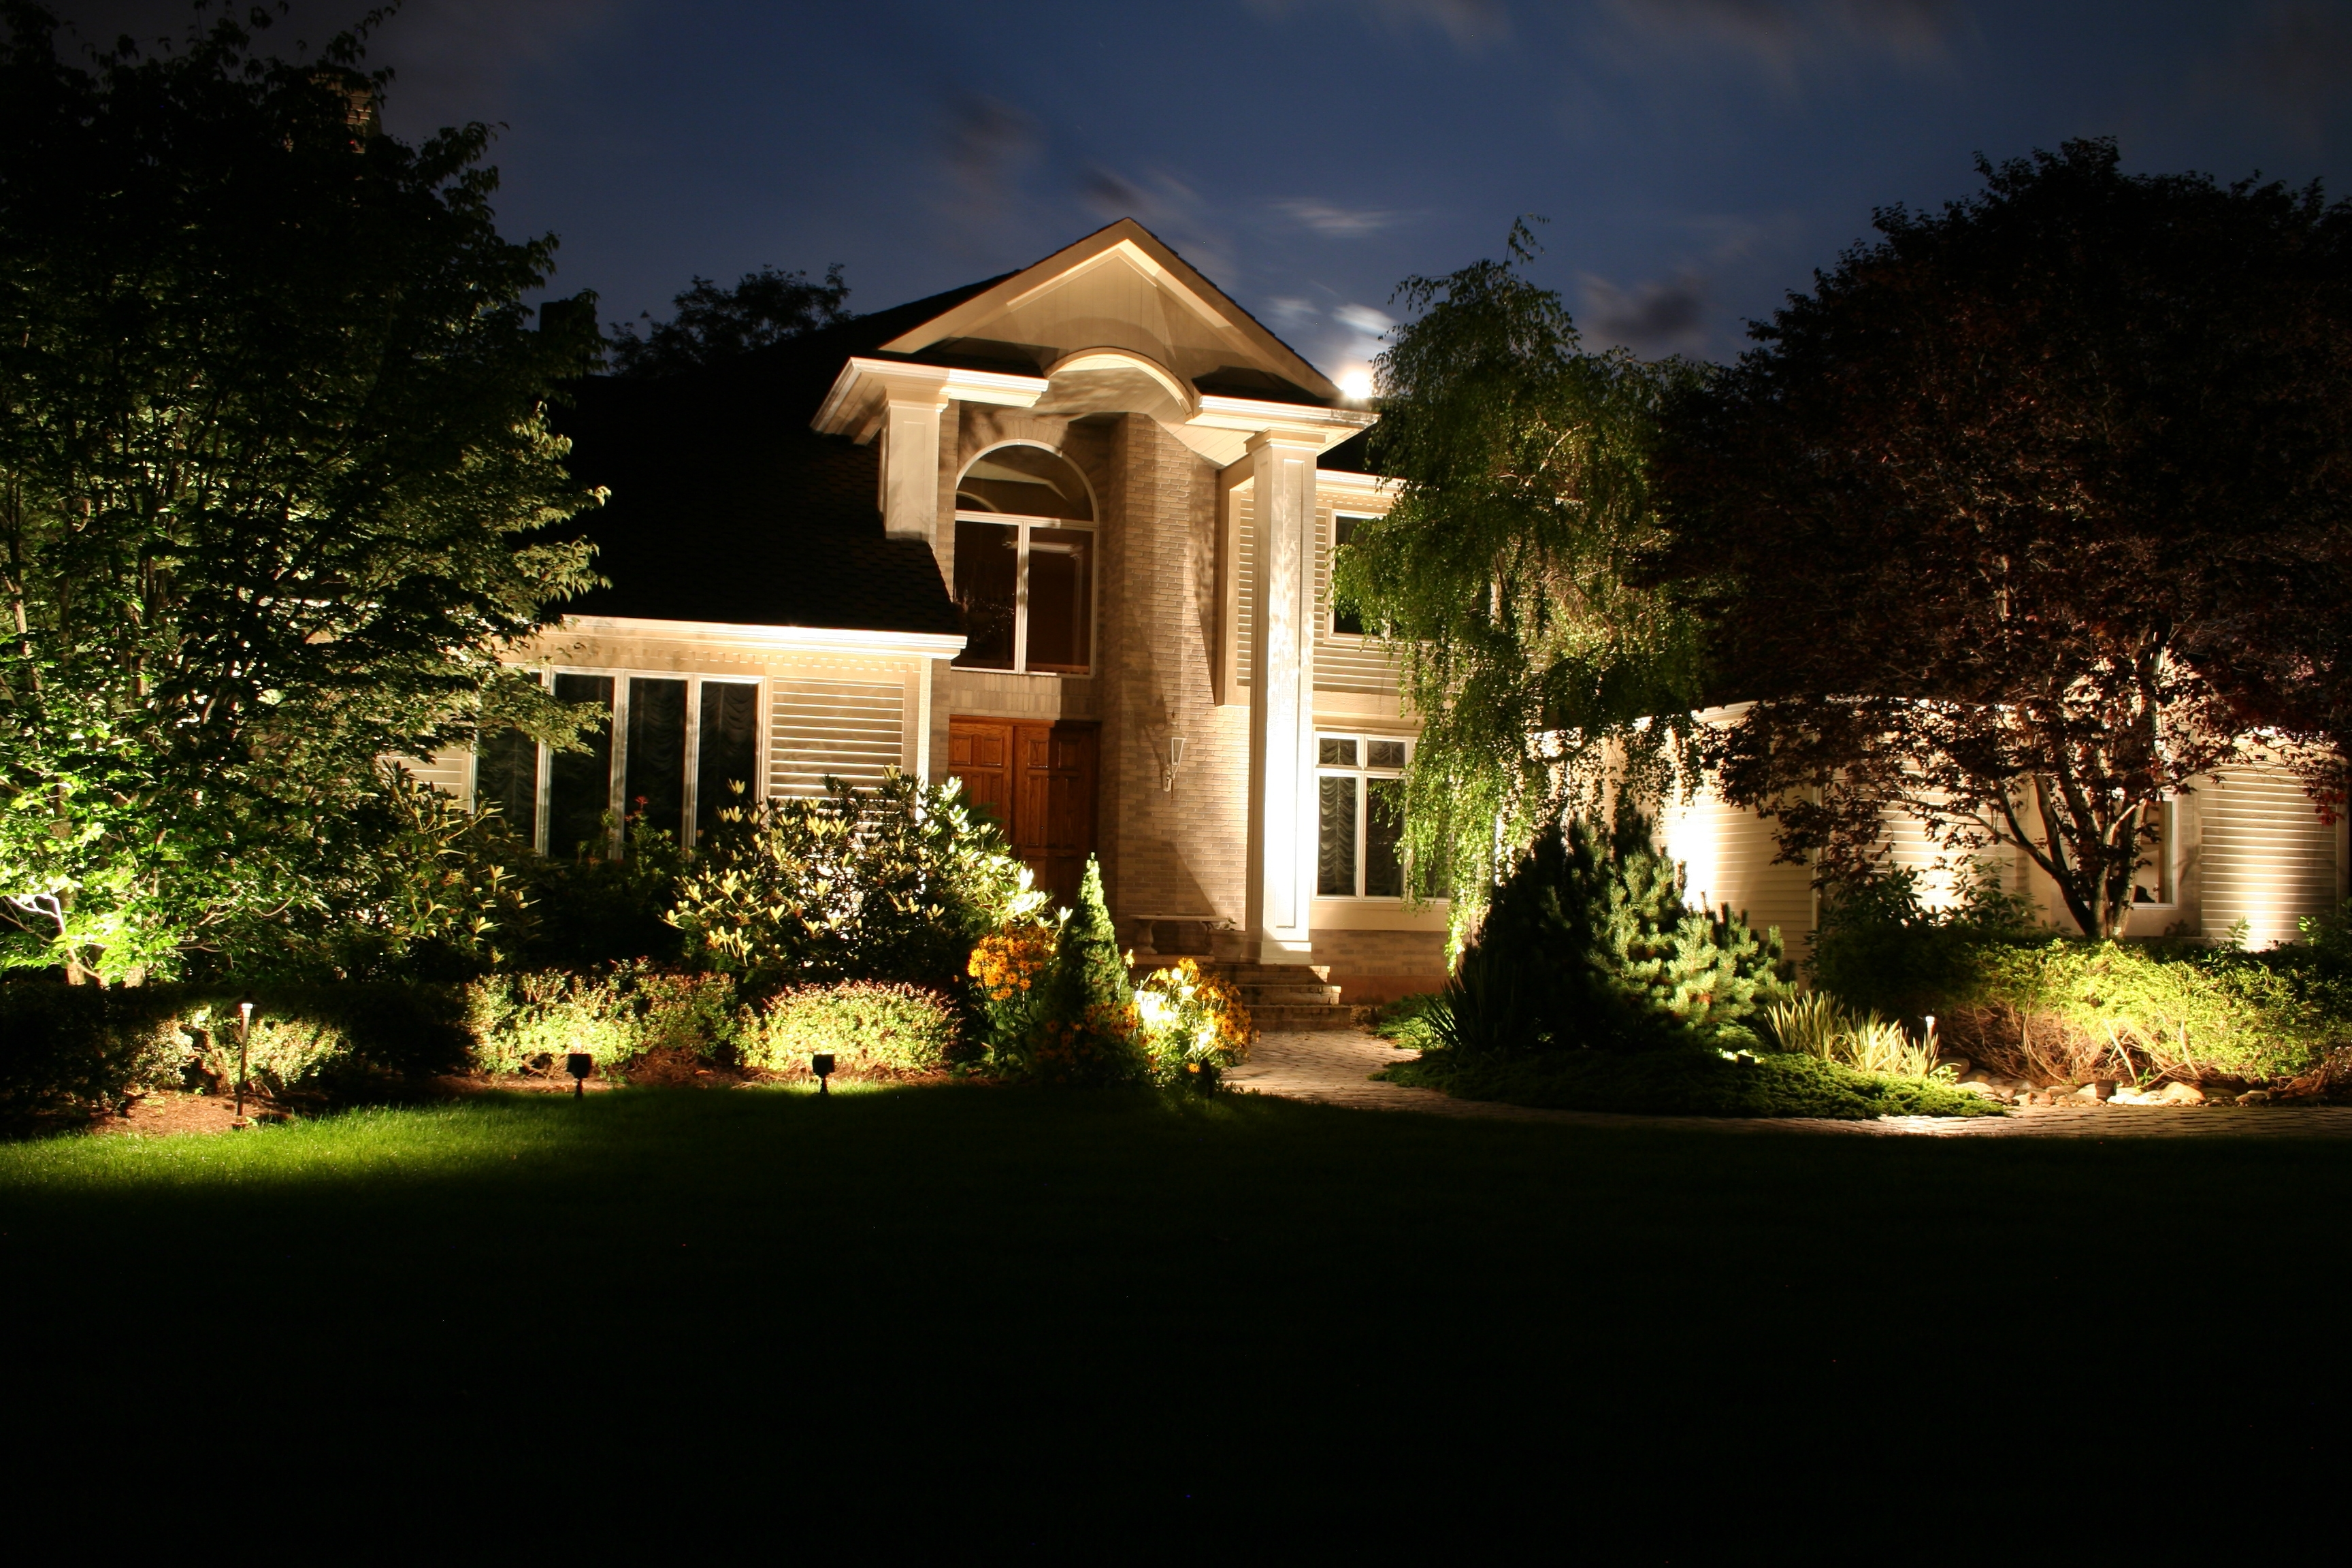 Contemporary Solar Garden Lighting Fixtures Pertaining To Most Up To Date Modern Solar Landscape Lighting, Solar Energy For Outdoor Lighting (View 8 of 20)